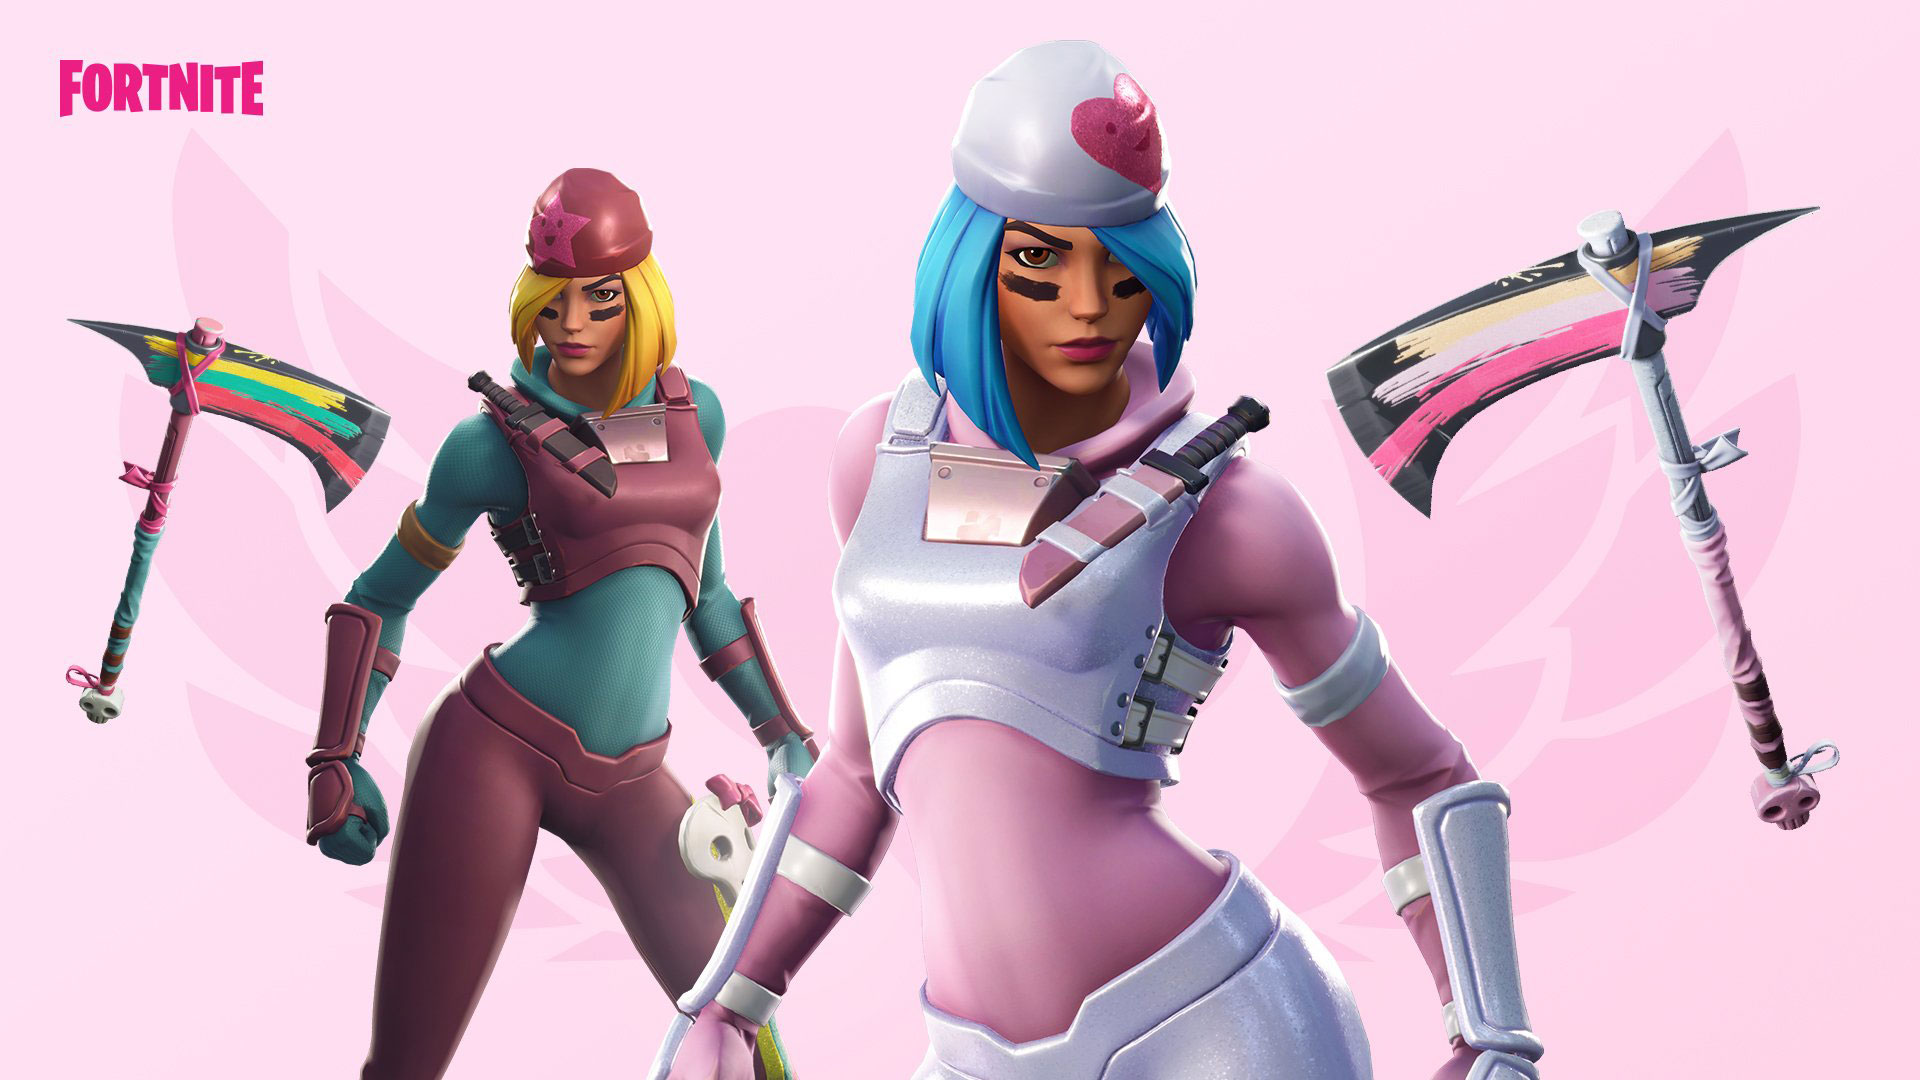 Cuddle Team Leader Fortnite Wallpapers All Details Mega Themes